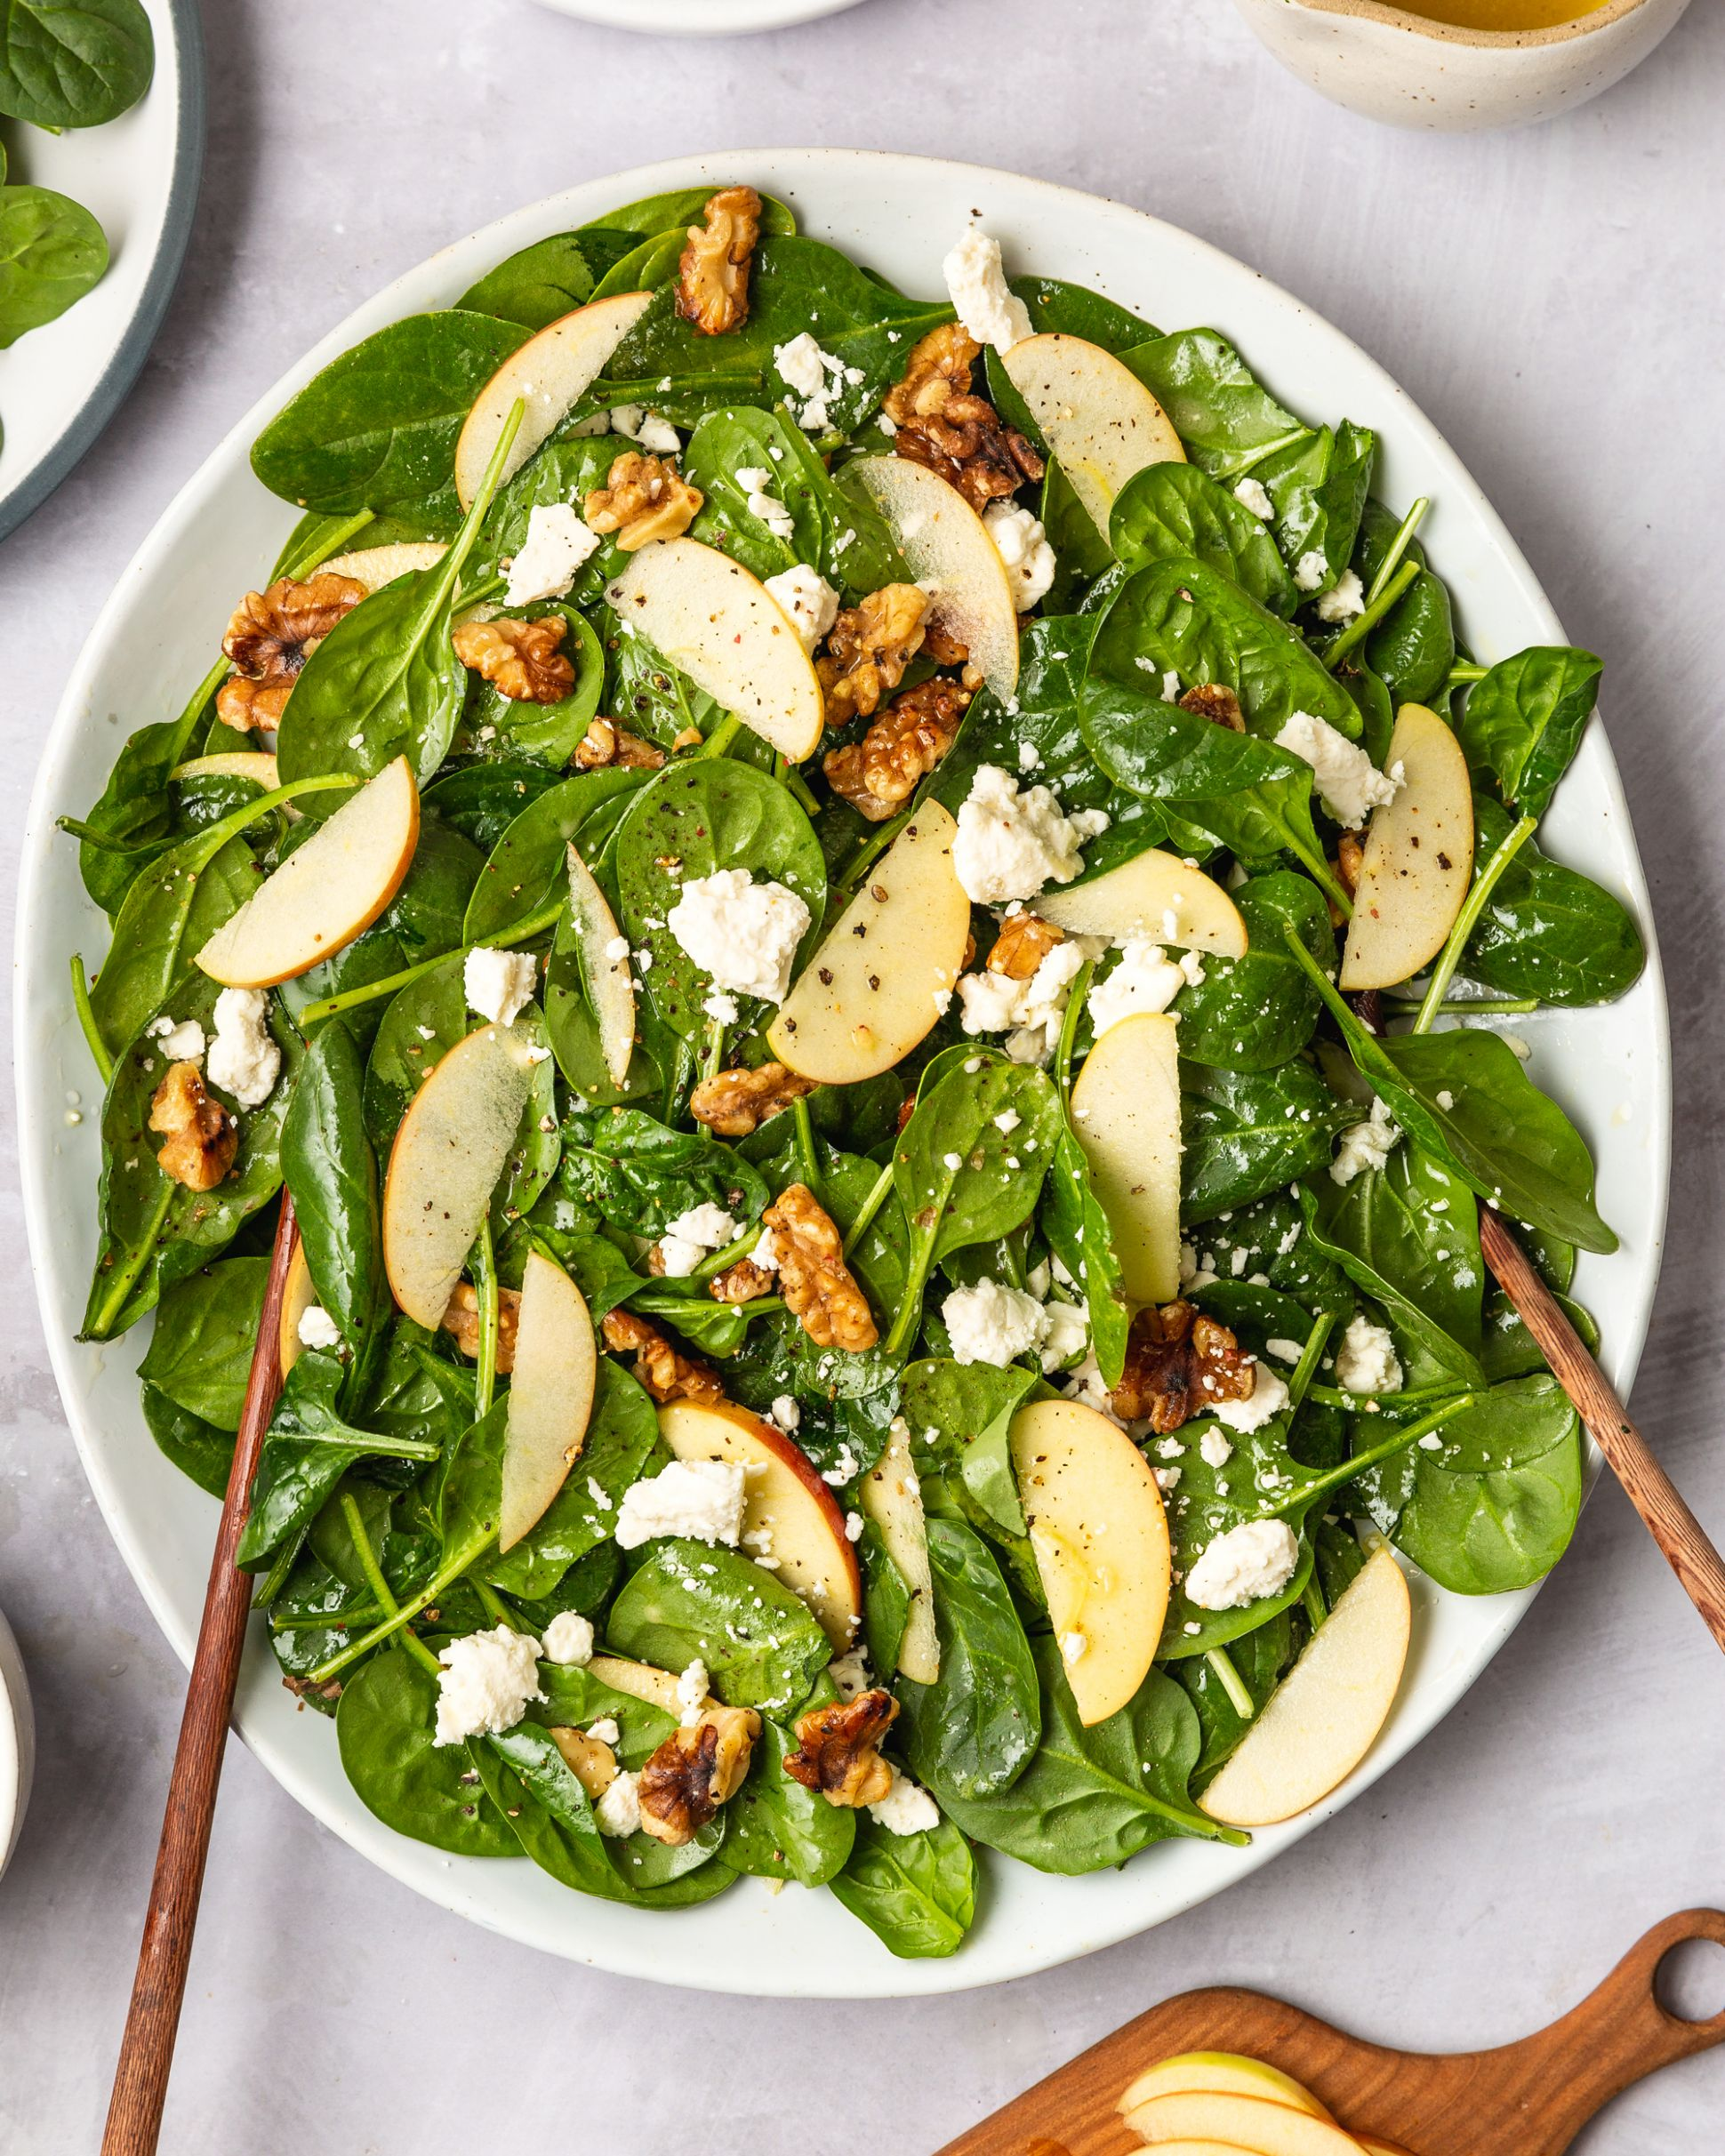 Easy Spinach Salad with Apples, Walnuts, and Feta - Salad Recipes Easy